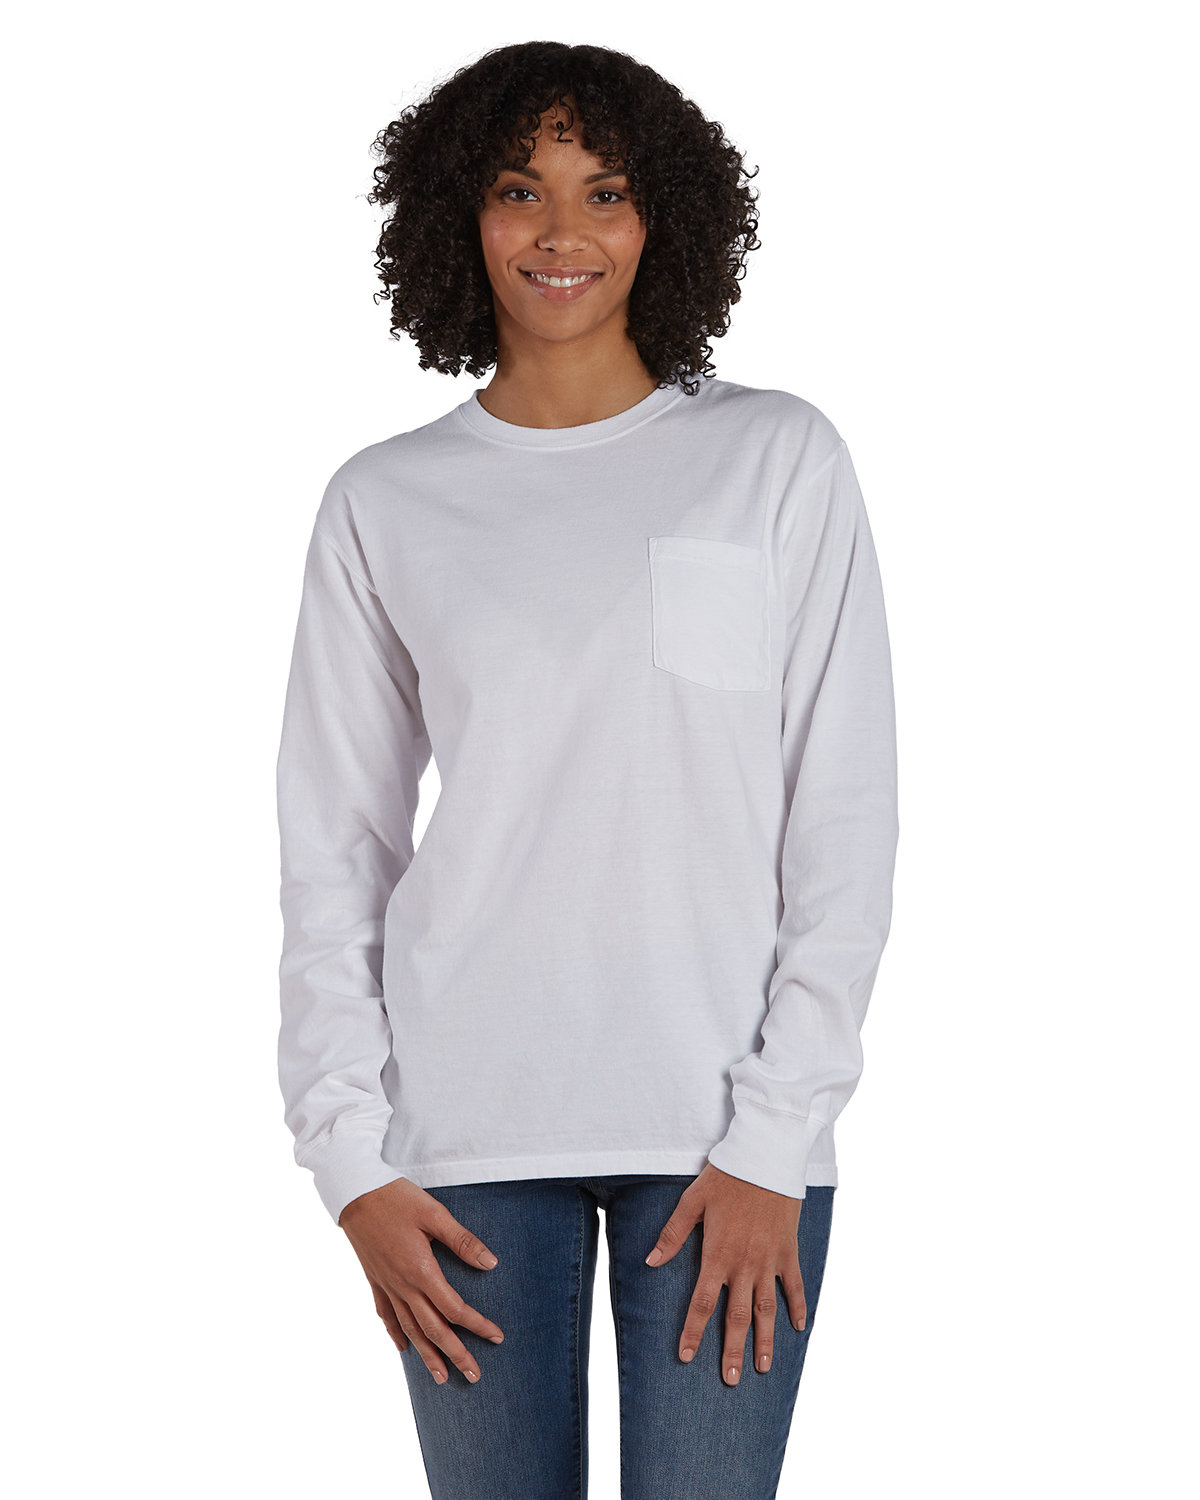 ComfortWash by Hanes Unisex Garment-Dyed Long-Sleeve T-Shirt with Pocket WHITE